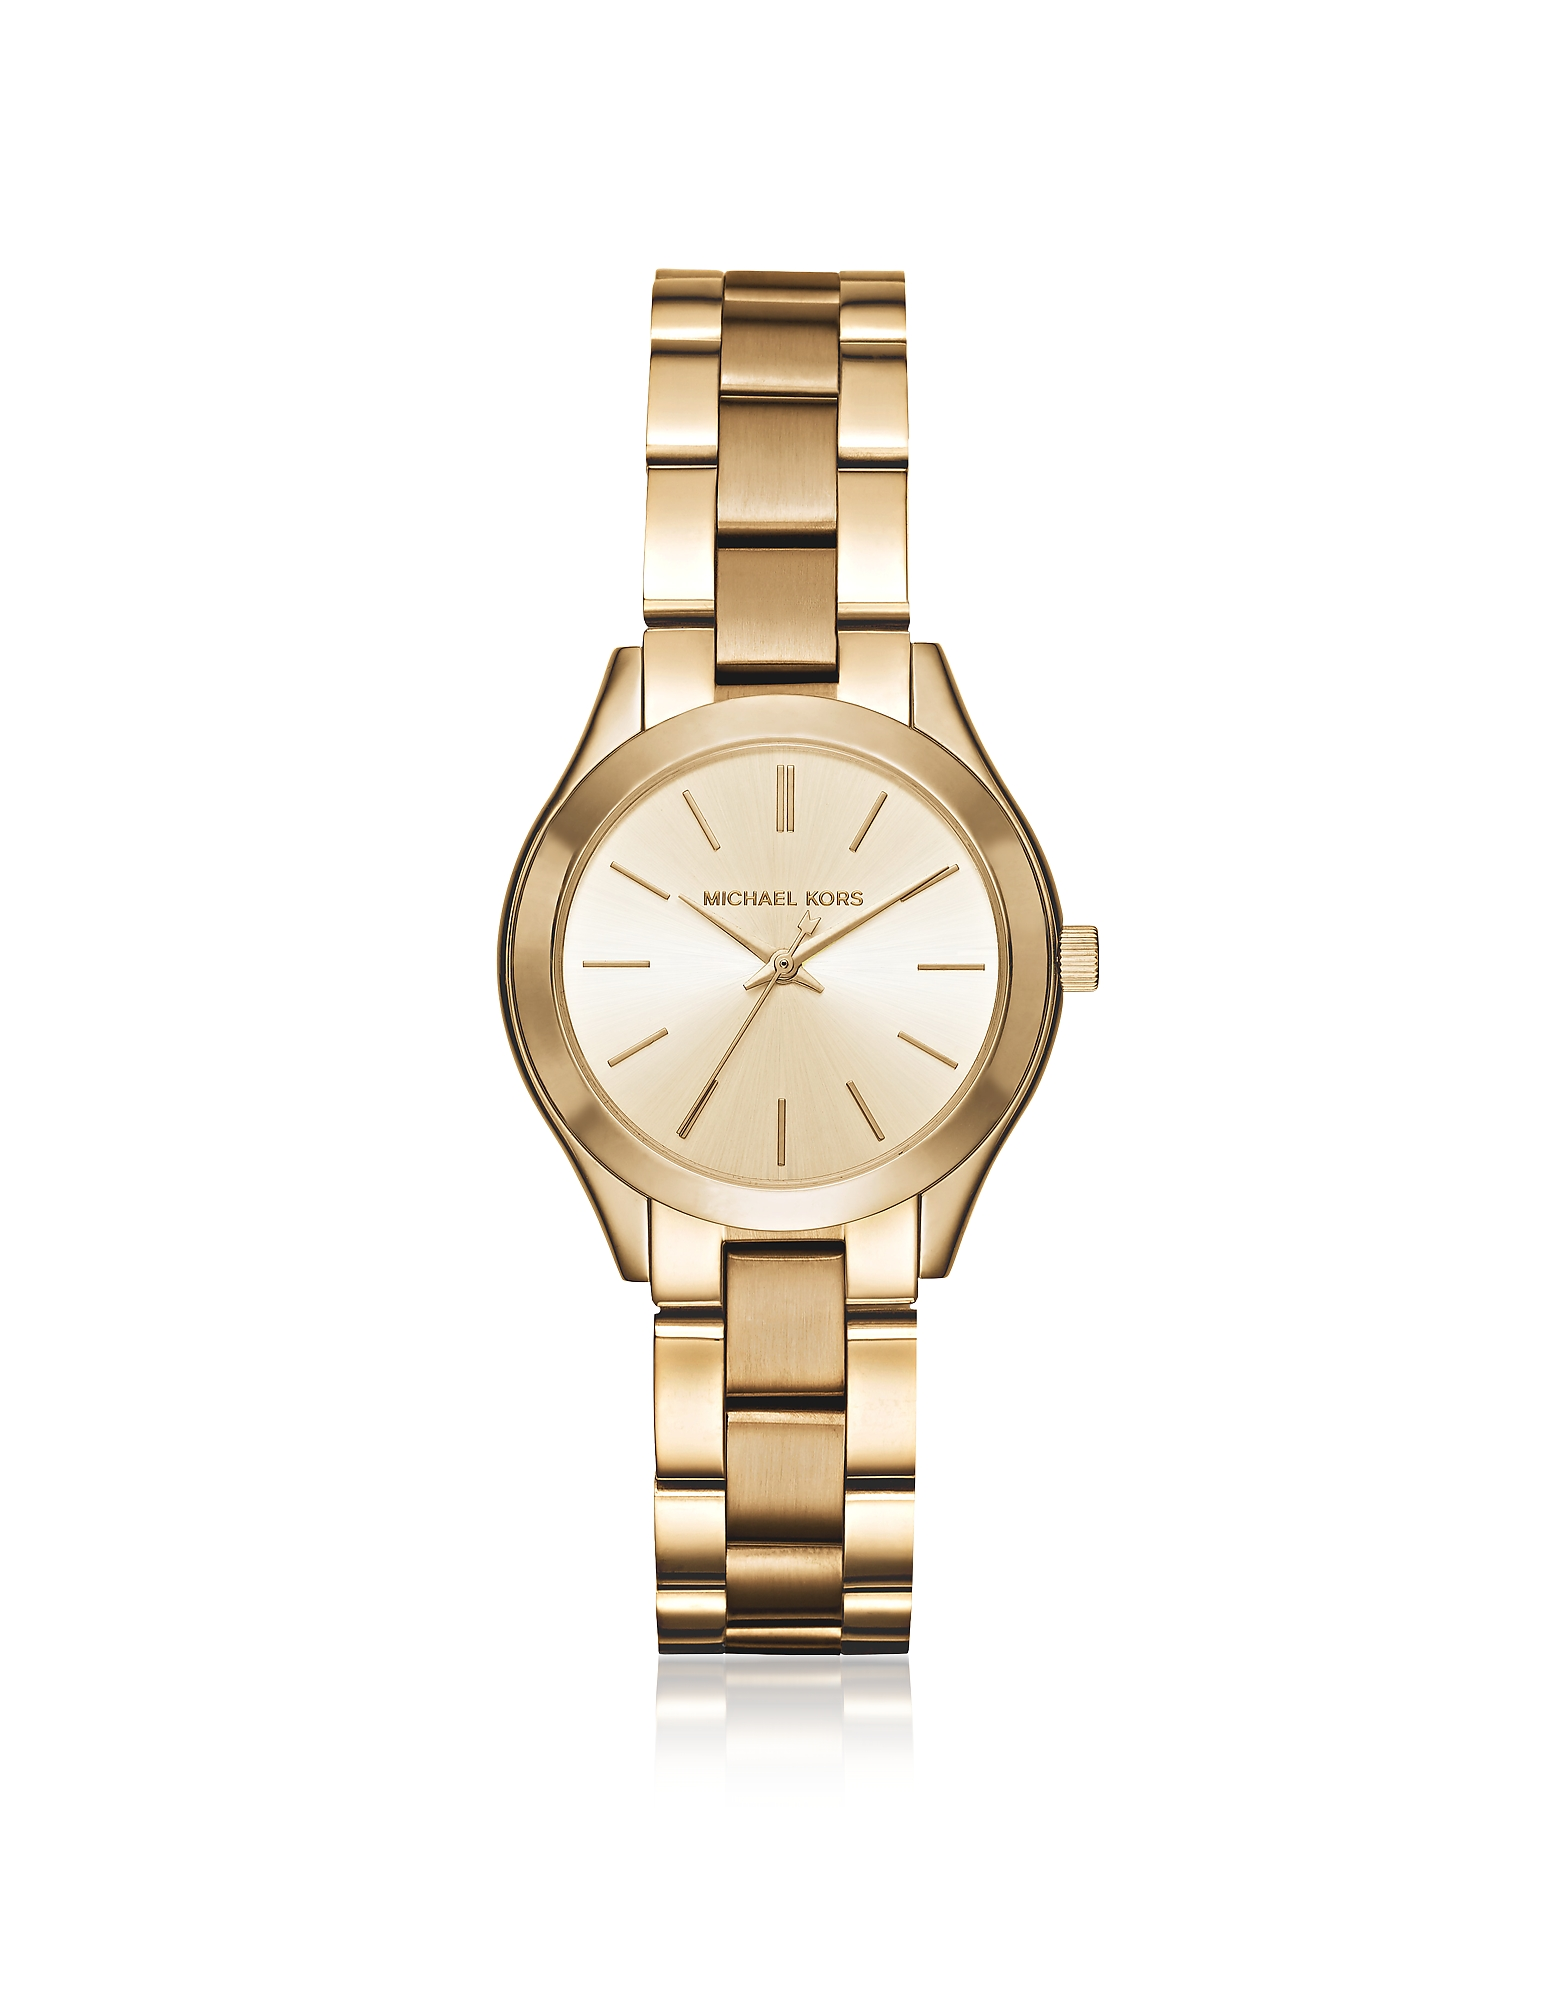 Michael Kors Designer Women's Watches, Mini Slim Runway Gold Tone Women's Watch